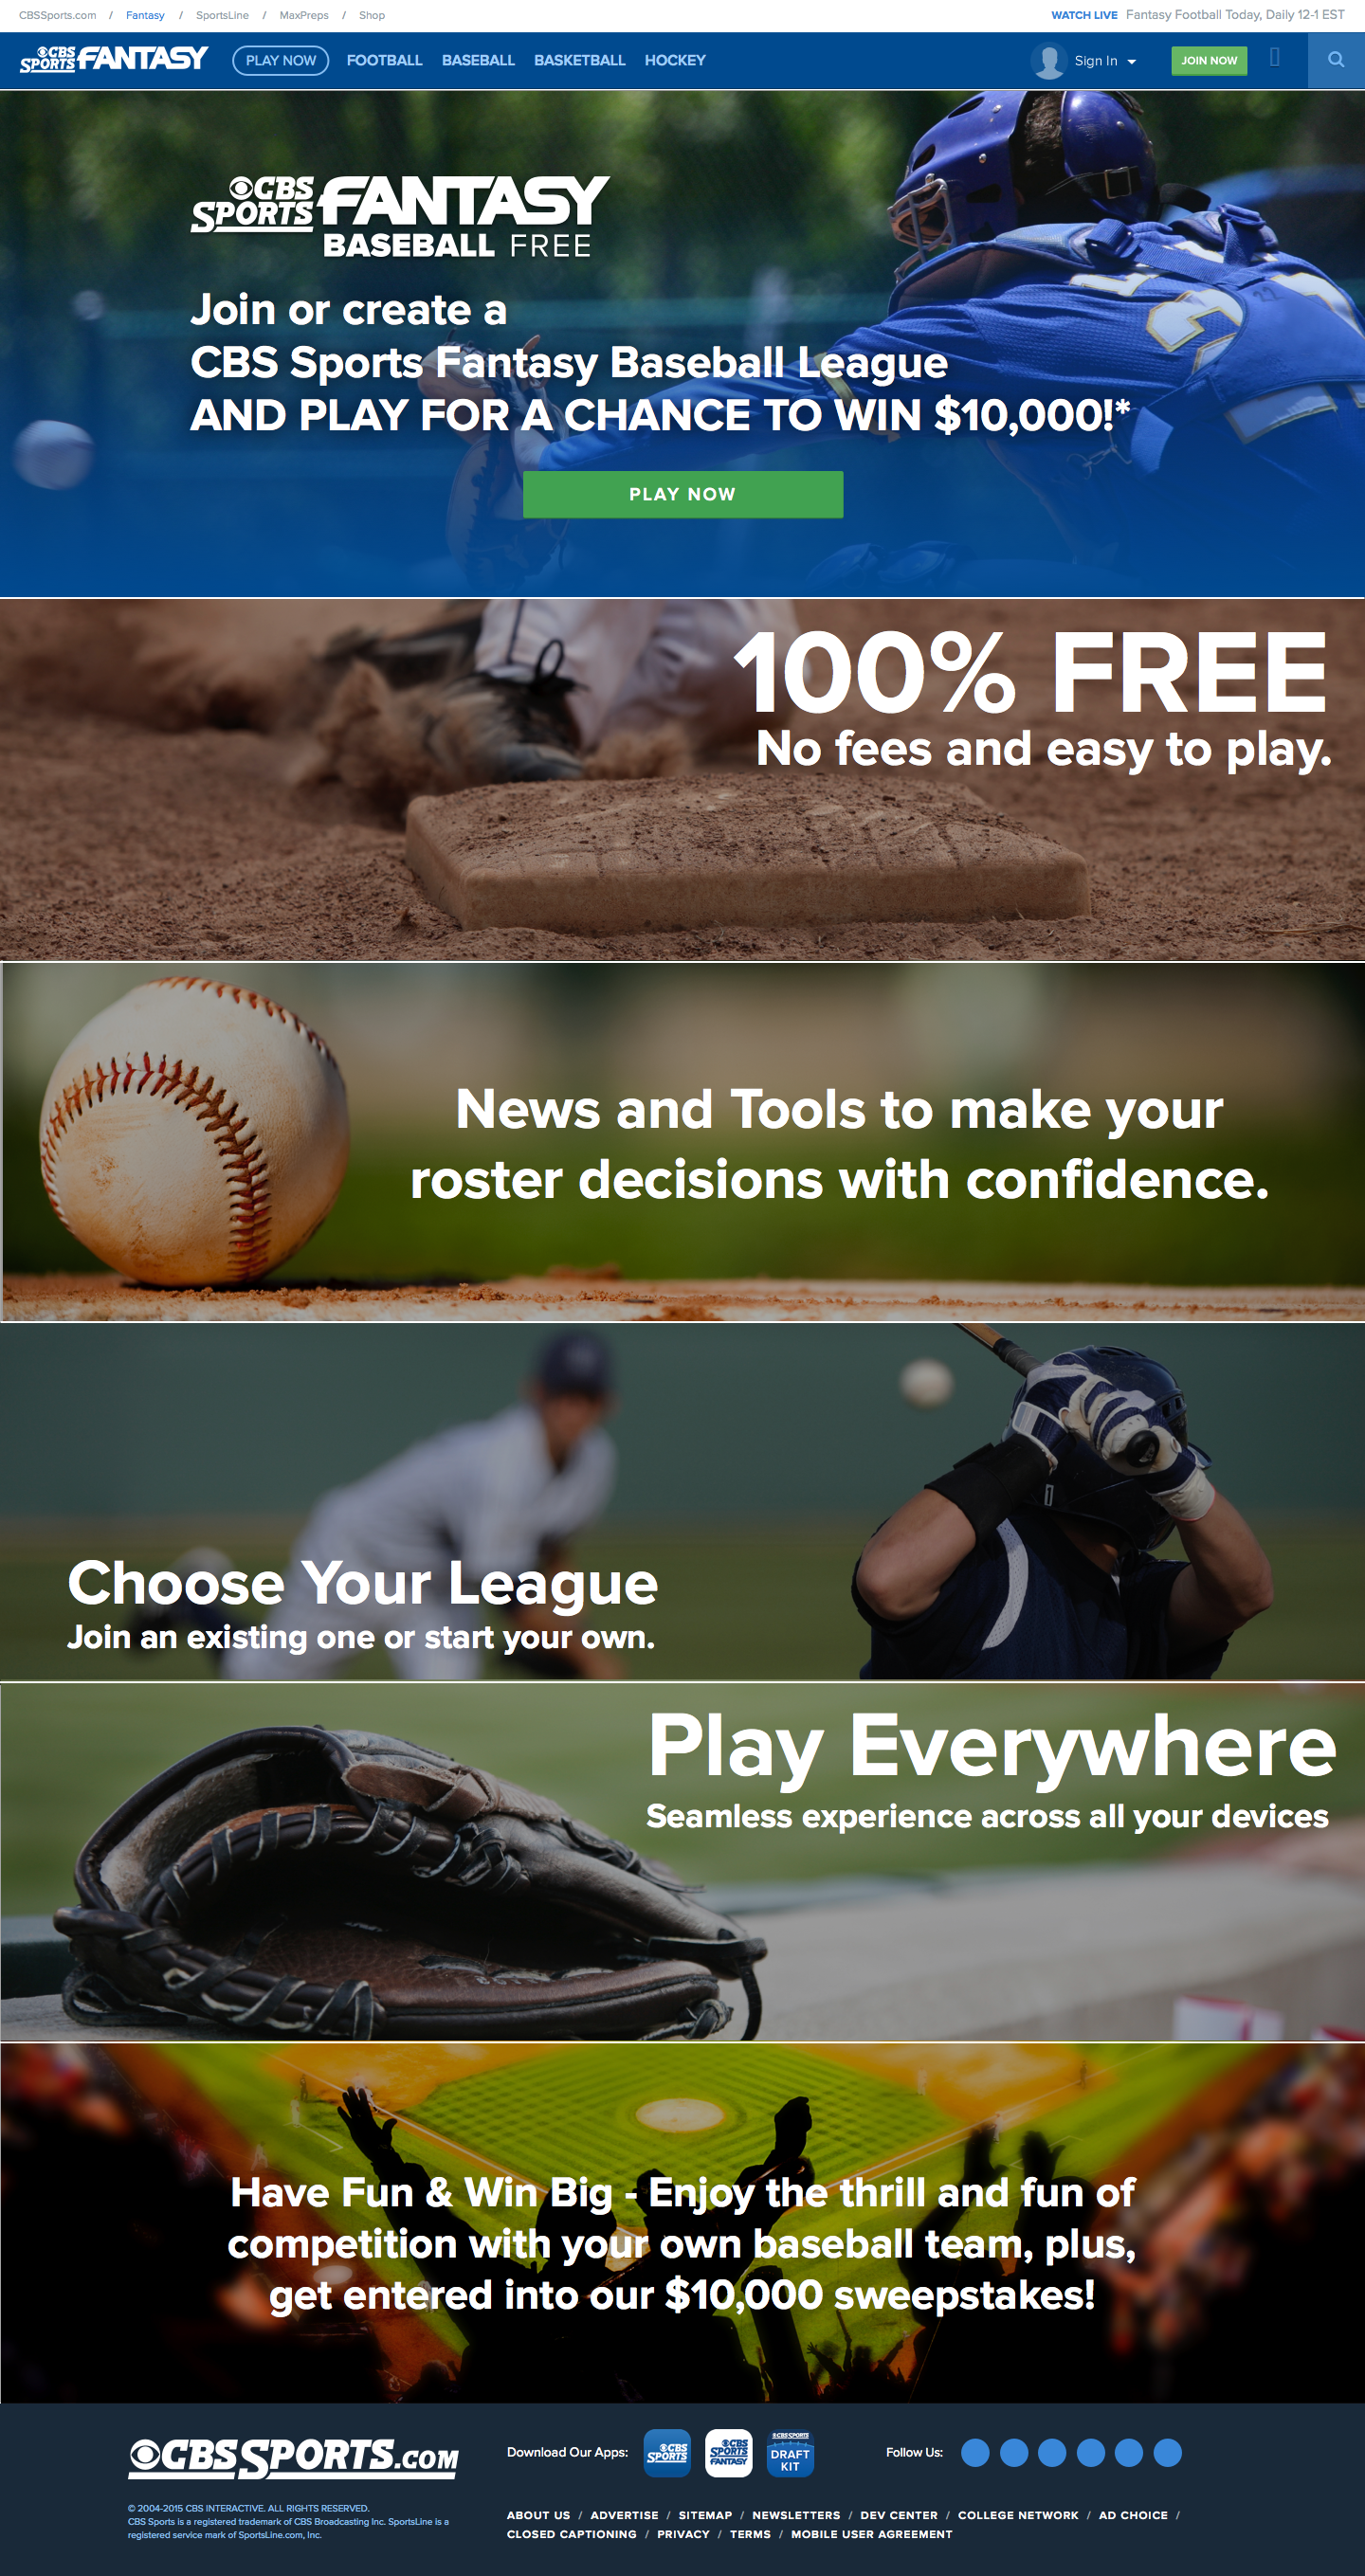 1440_2016_CBS_SPORTS_Baseball_FREE_League_Landing_Page.png